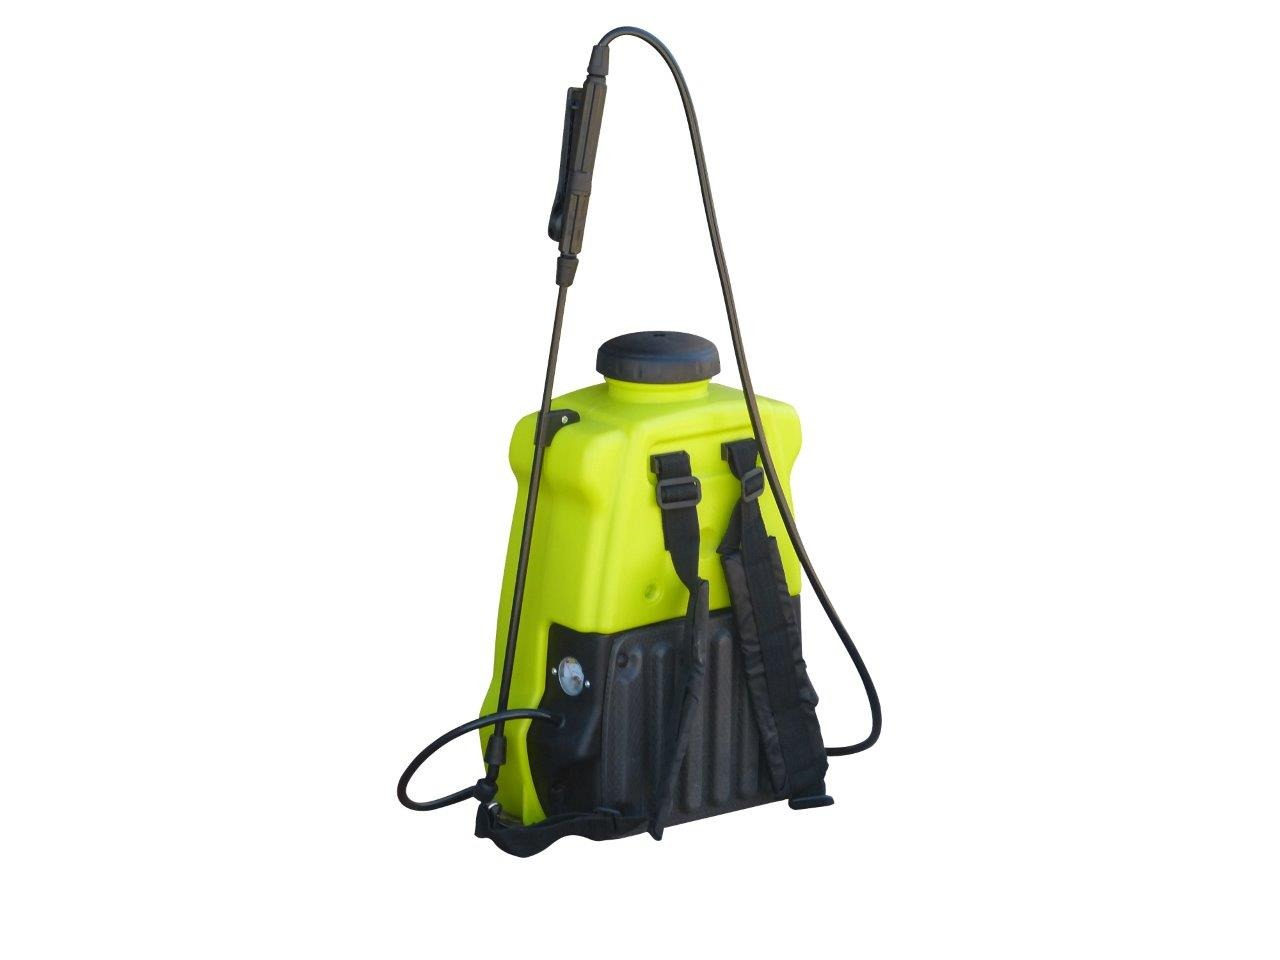 16L RECHARGEABLE BACKPACK SPRAYER